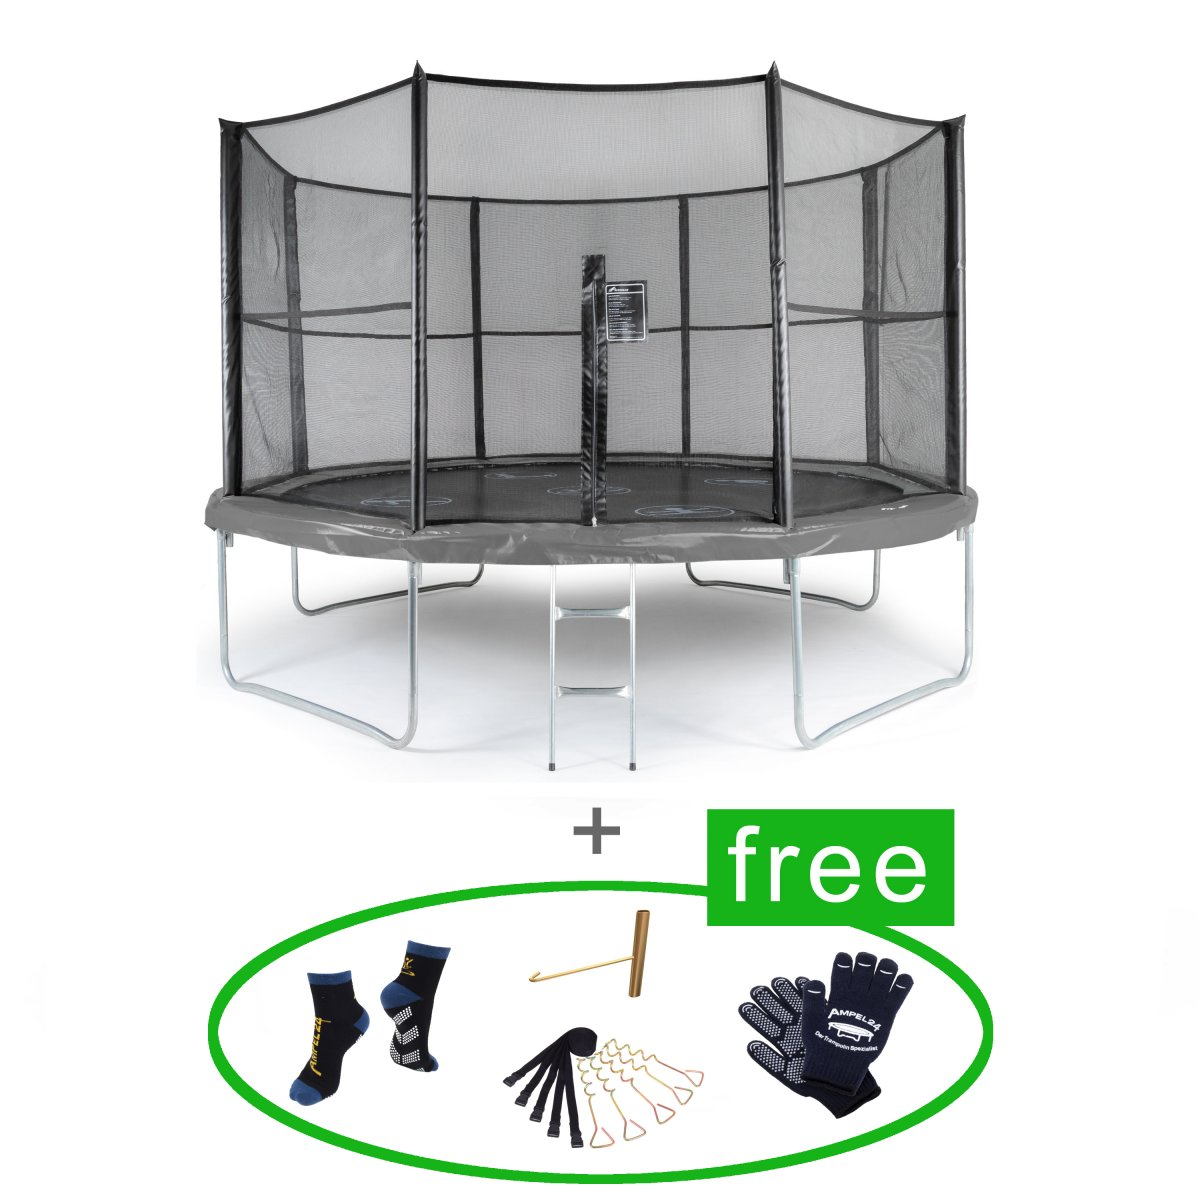 Akrobat Trampolin Orbit 366 cm All In One (rund, grau, bis 130 kg)